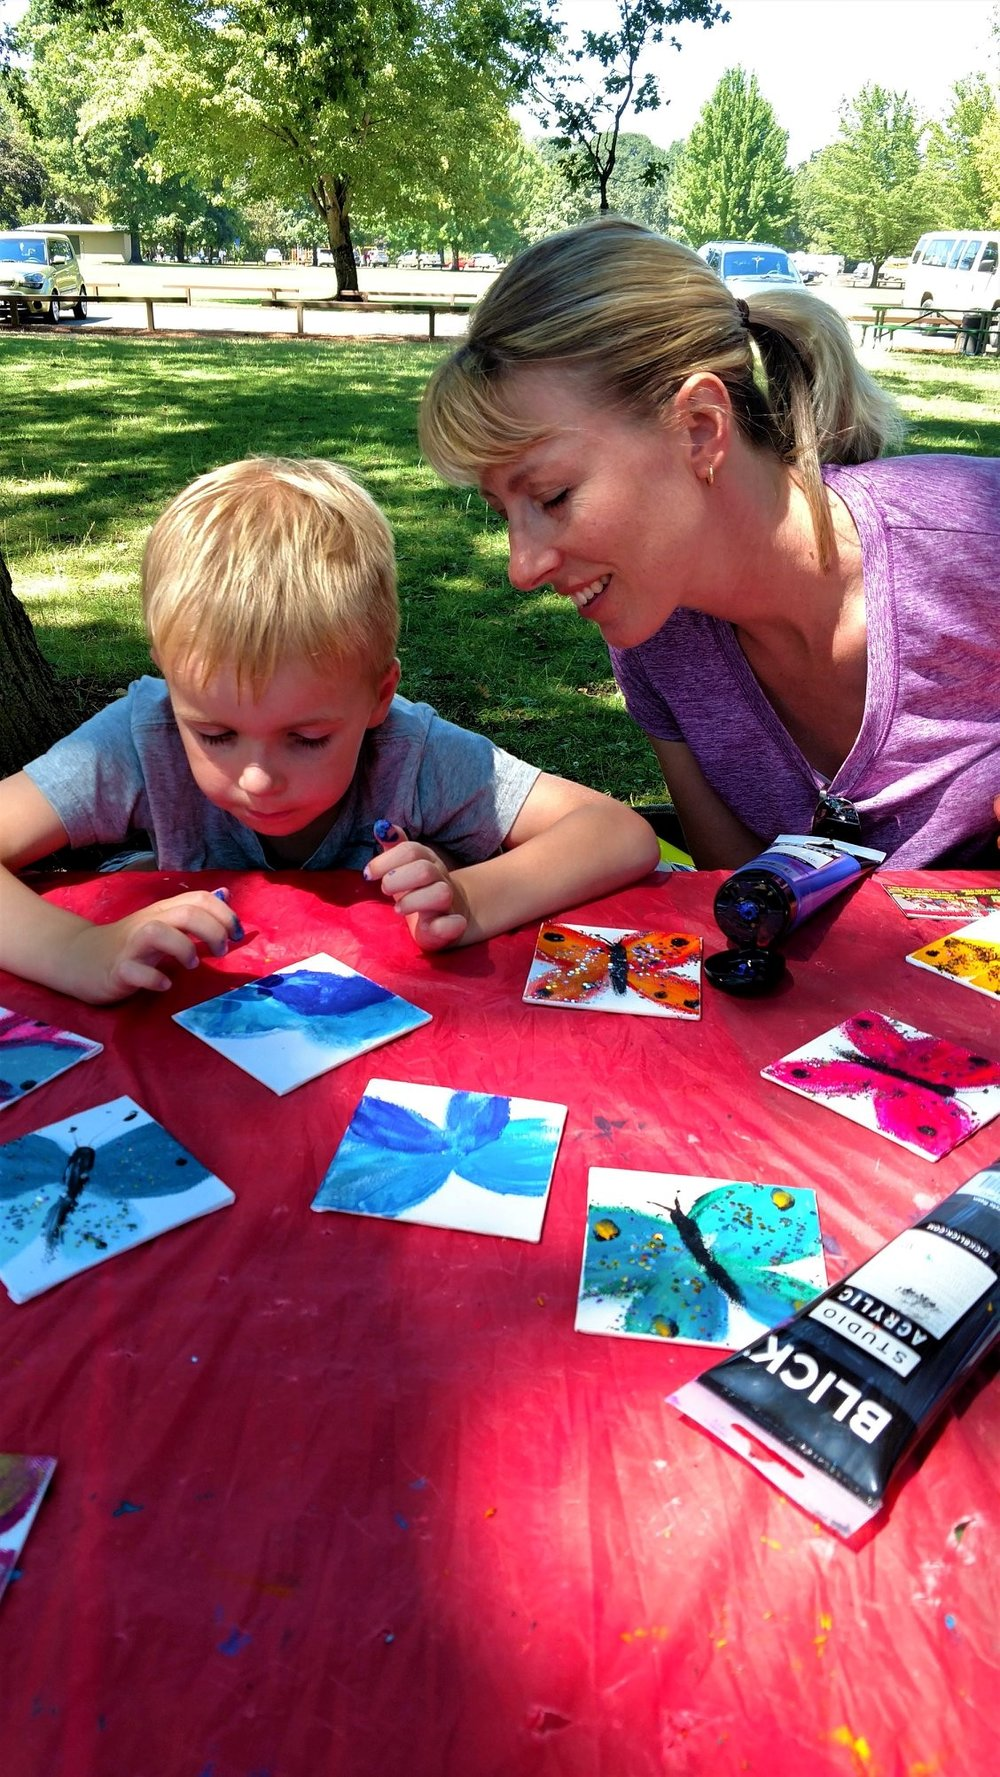 6x6 glitterflies karate event finger paint with acrylics then sparkle with glitter glue!- loved by all - mom & me family school & outdoor events